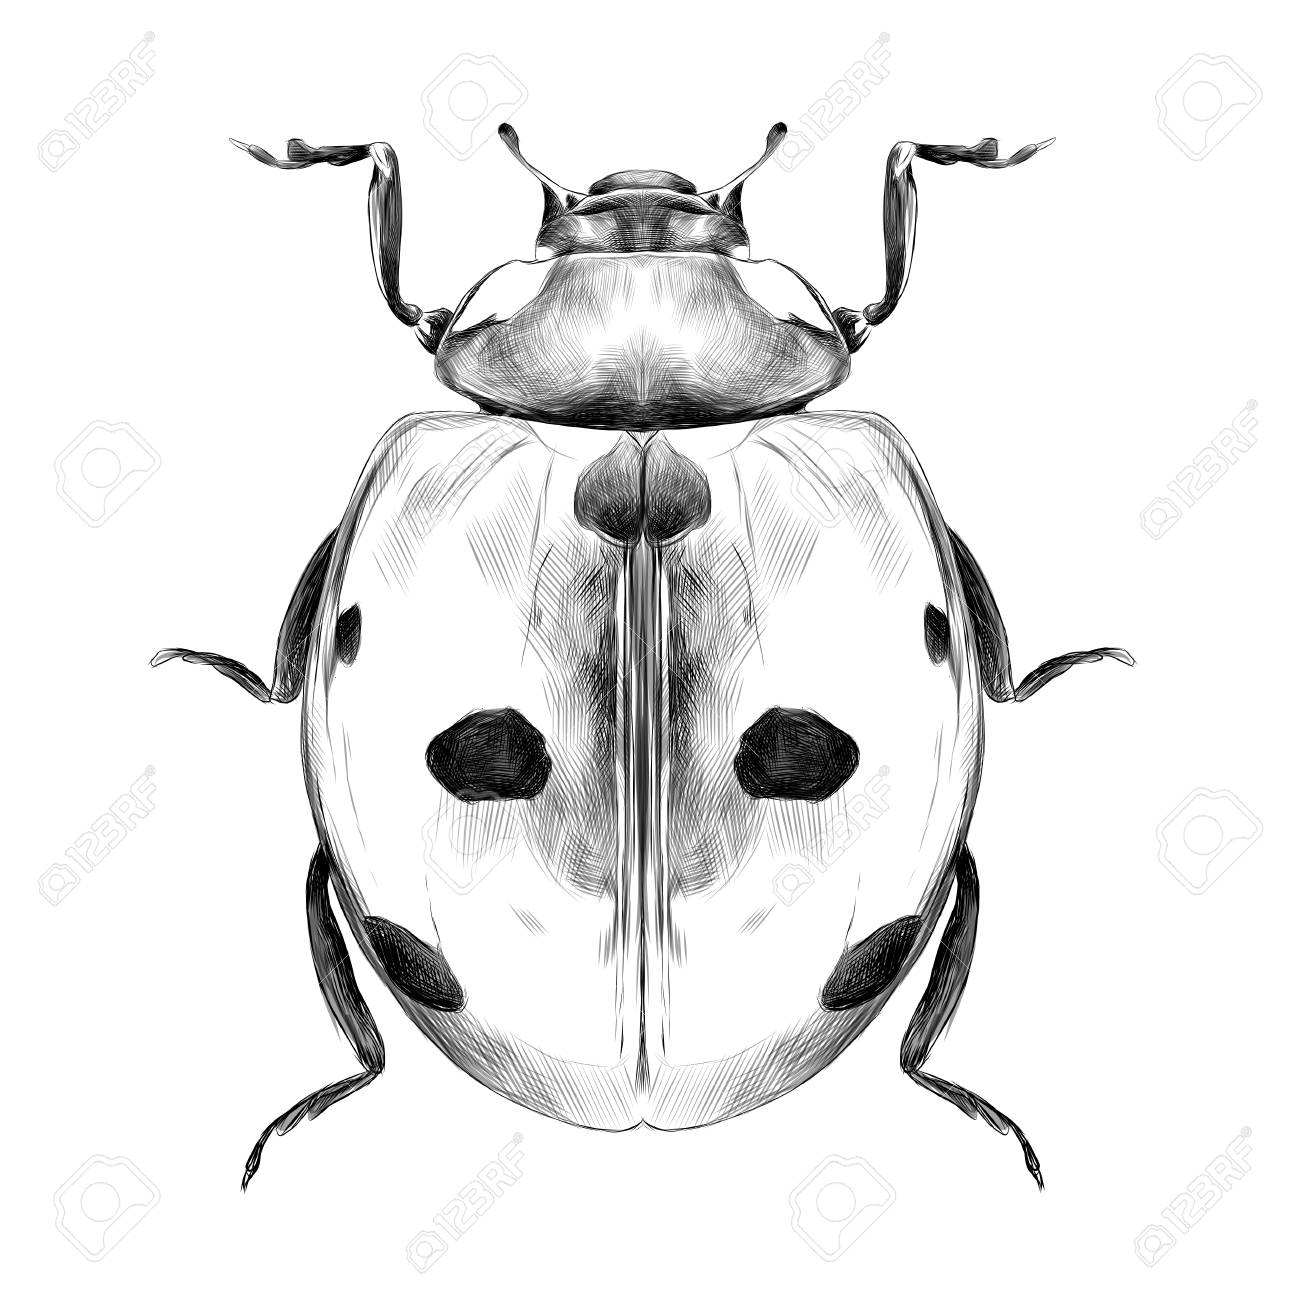 Ladybug Top View Of A Symmetric Graph Sketch Vector Black And